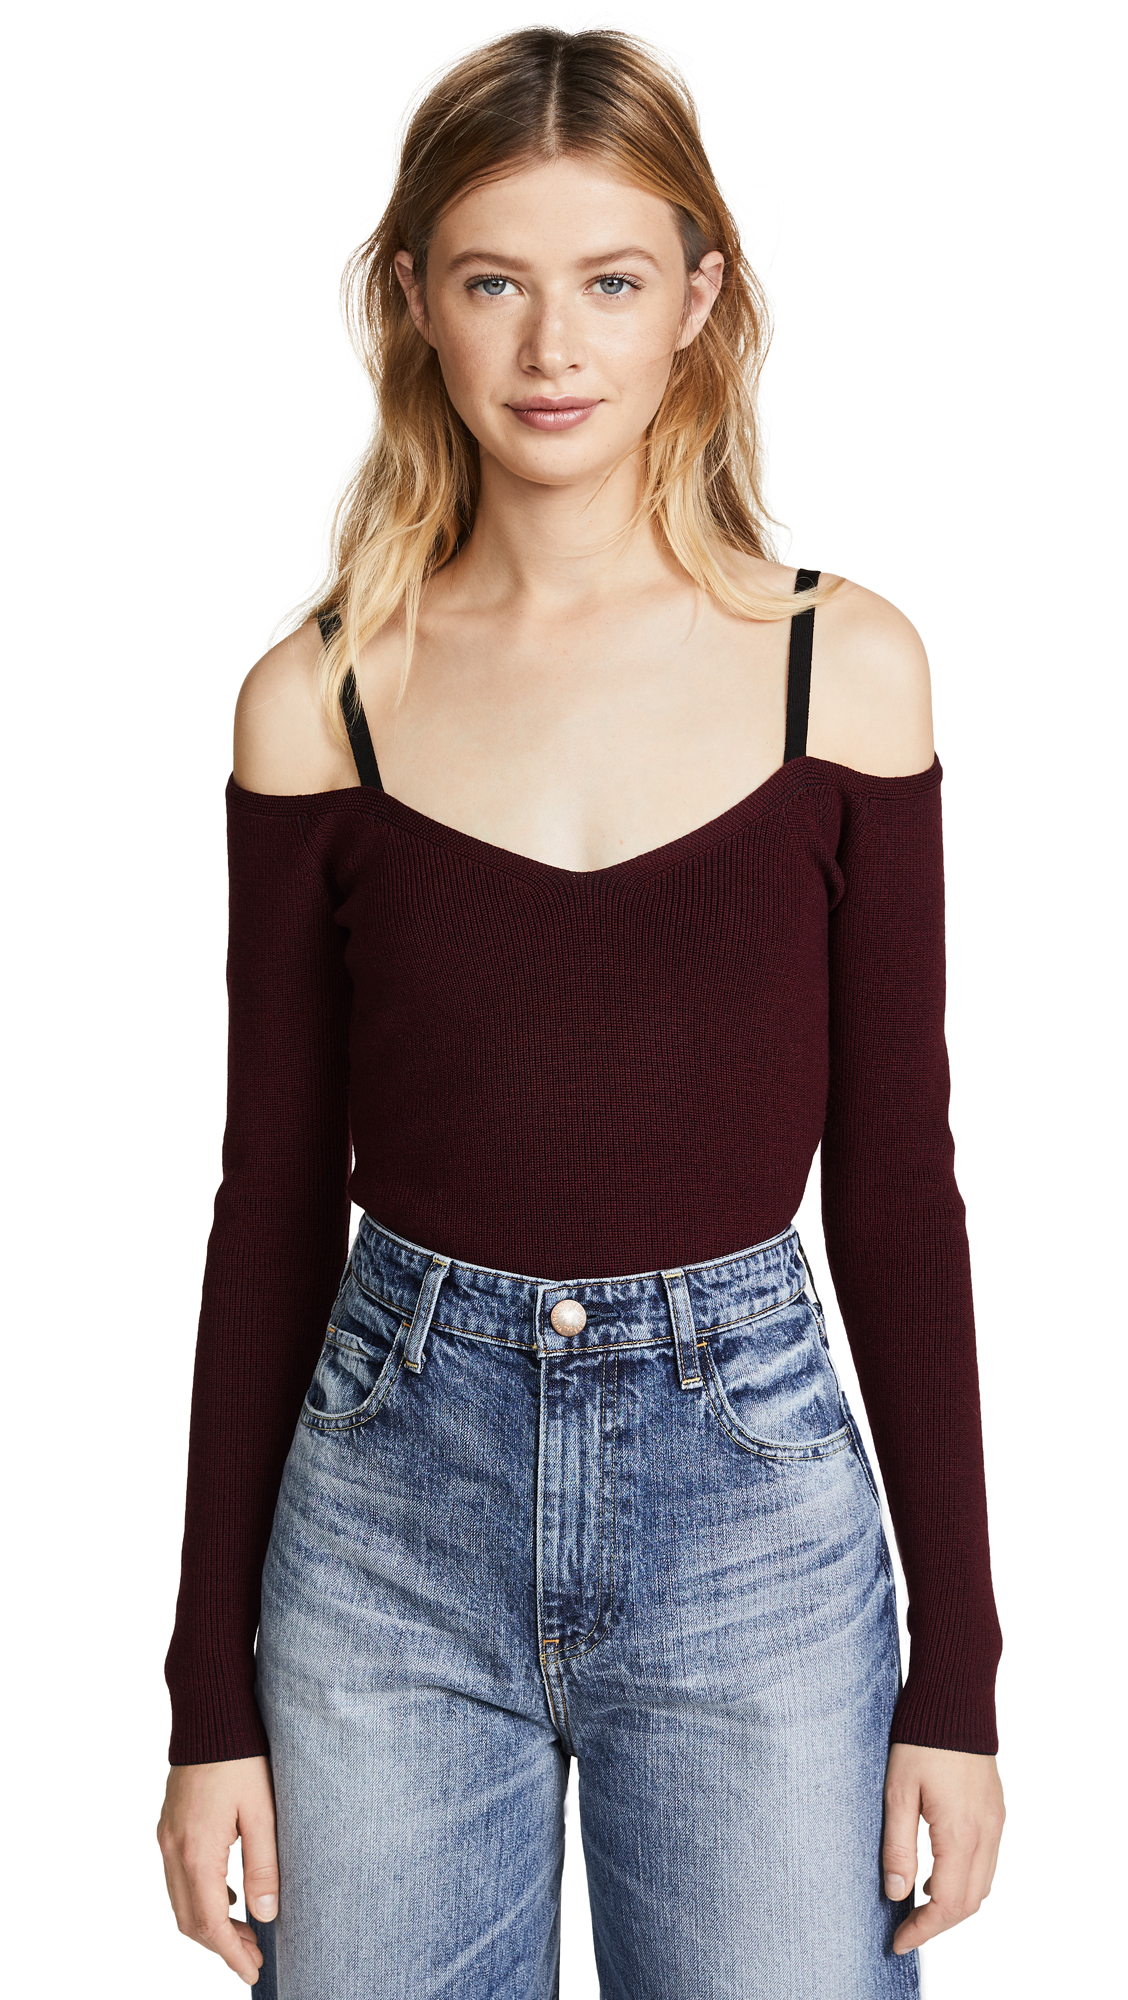 Jason Wu Grey Off Shoulder Knit Top In Garnet/Midnight